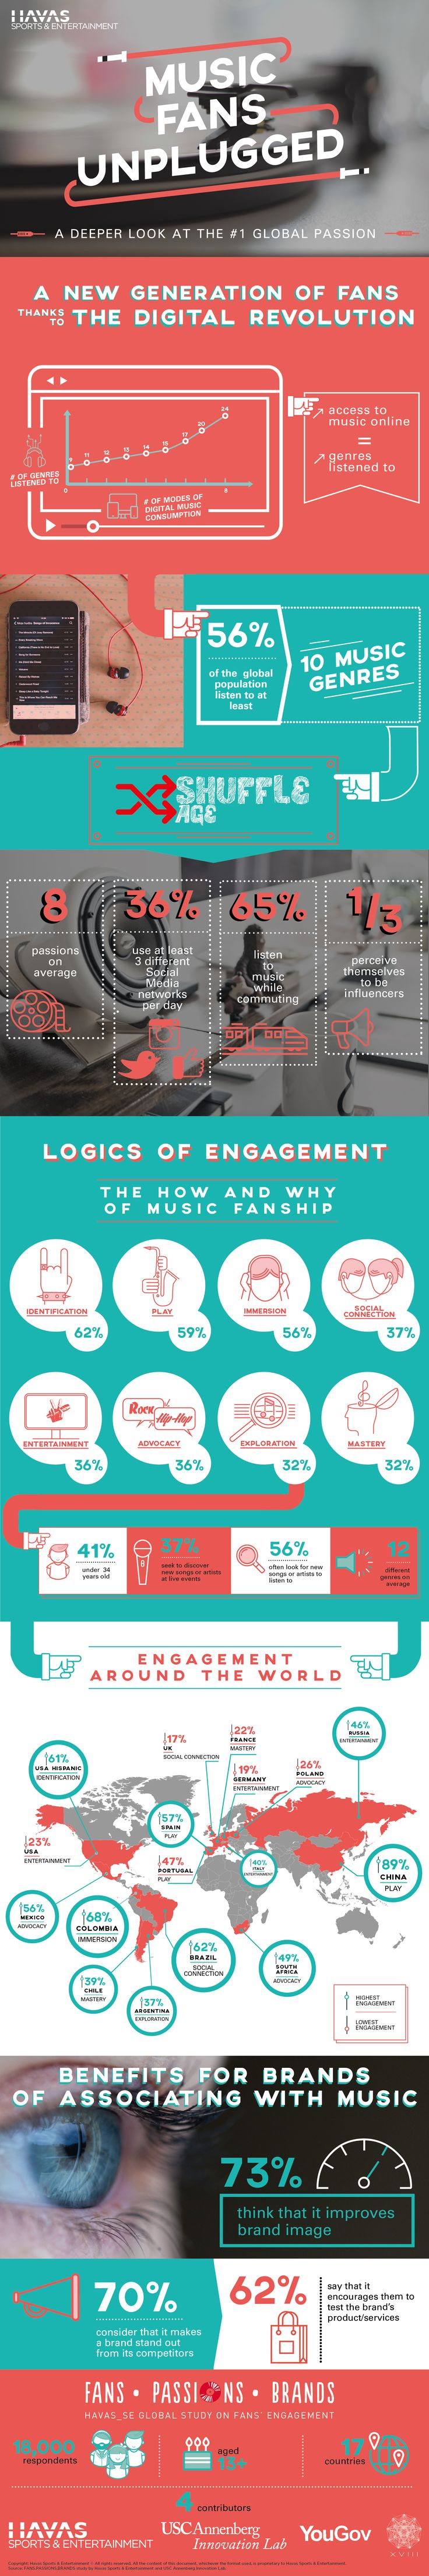 """The """"Shuffle Age"""": discover why and how #music #fans engage in their #passion, thanks to a survey of 18,000 people across 17 countries #infographic"""